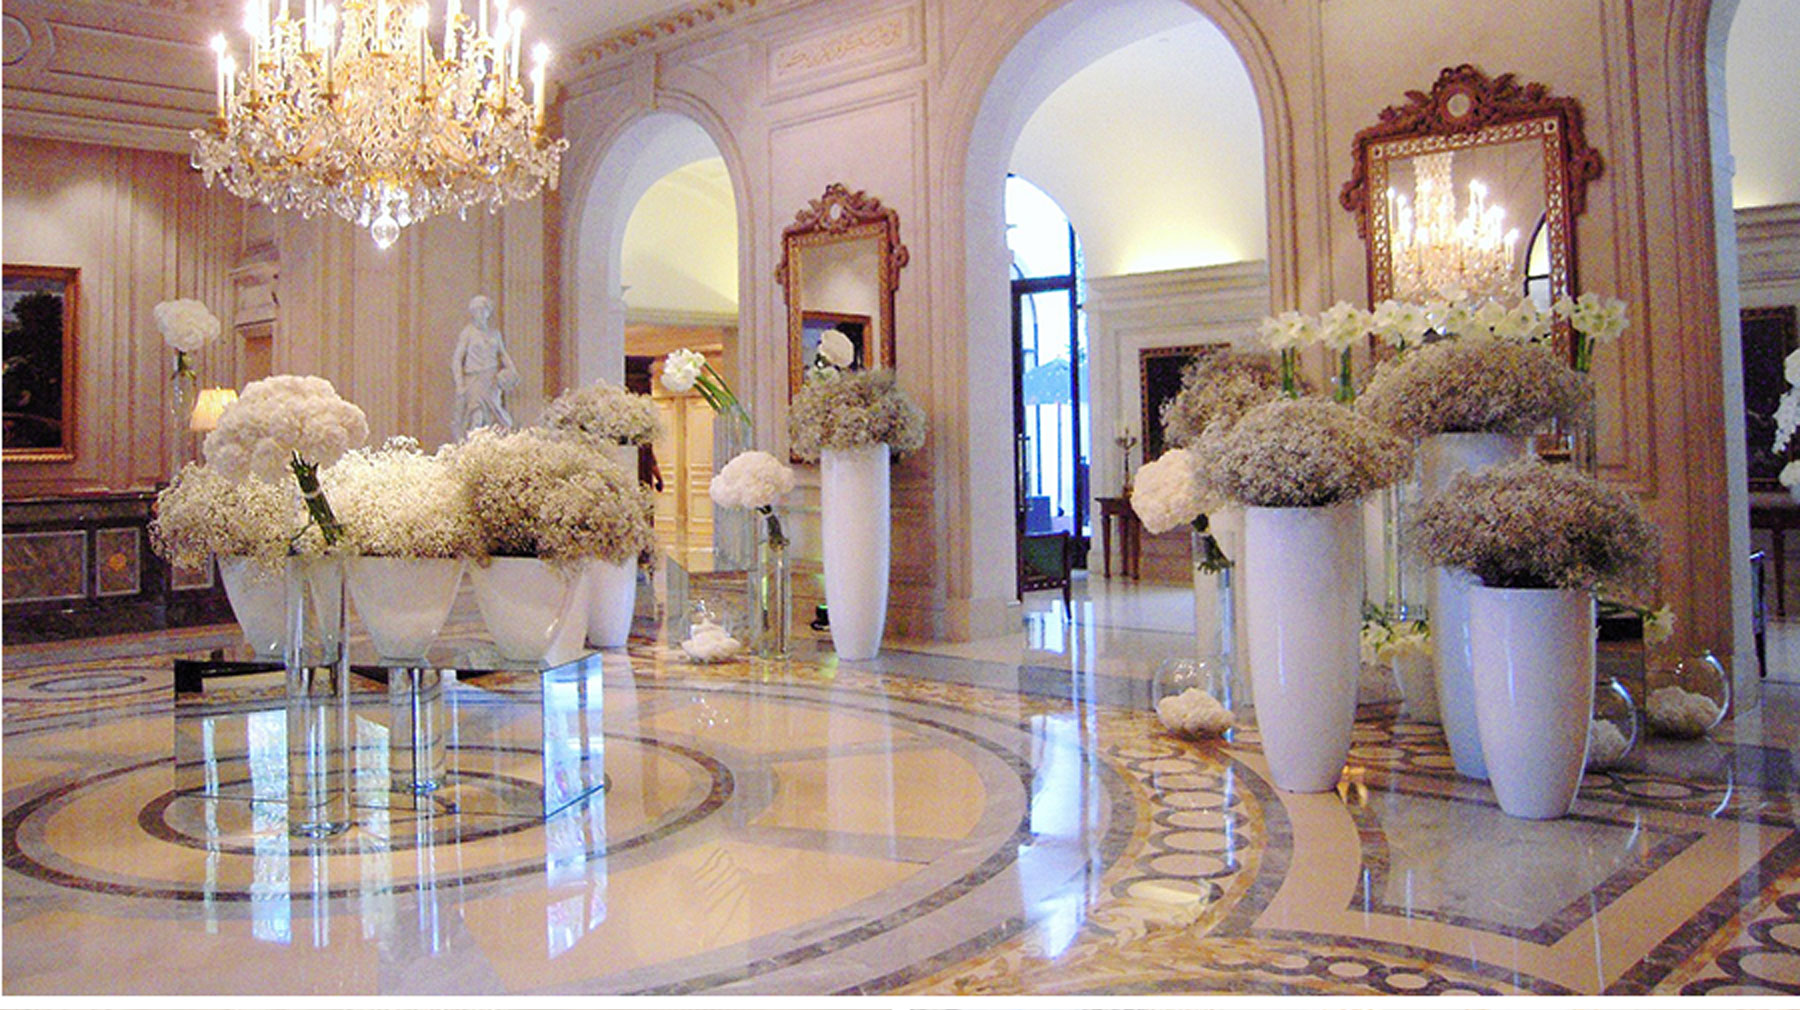 V188 Great Escapes Four Seasons Hotel George V Paris France CeciStyle Ceci New York